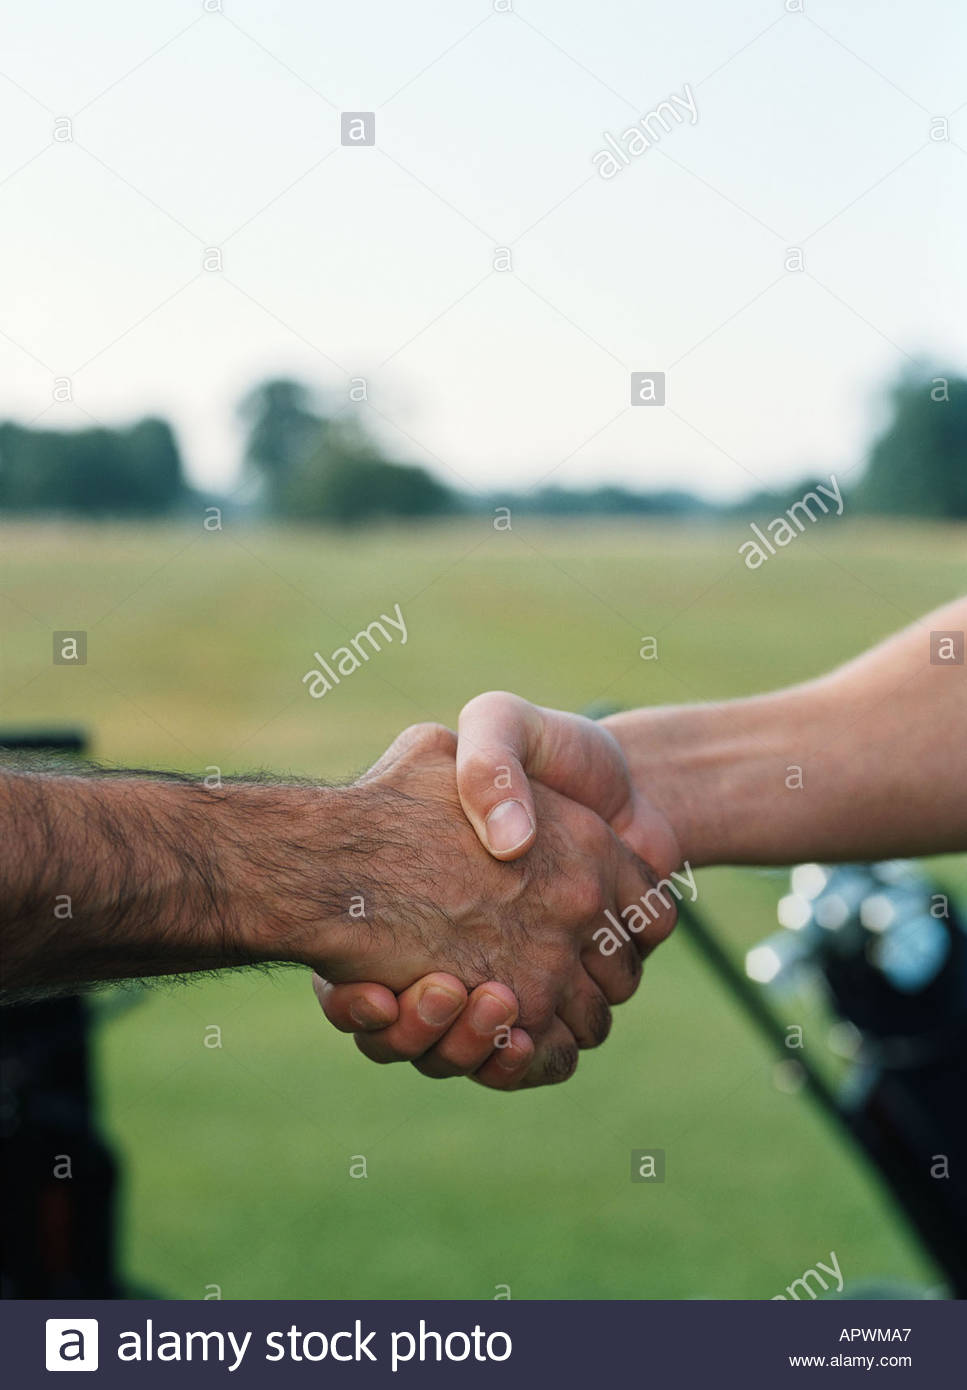 Golfers shaking hands - Stock Image